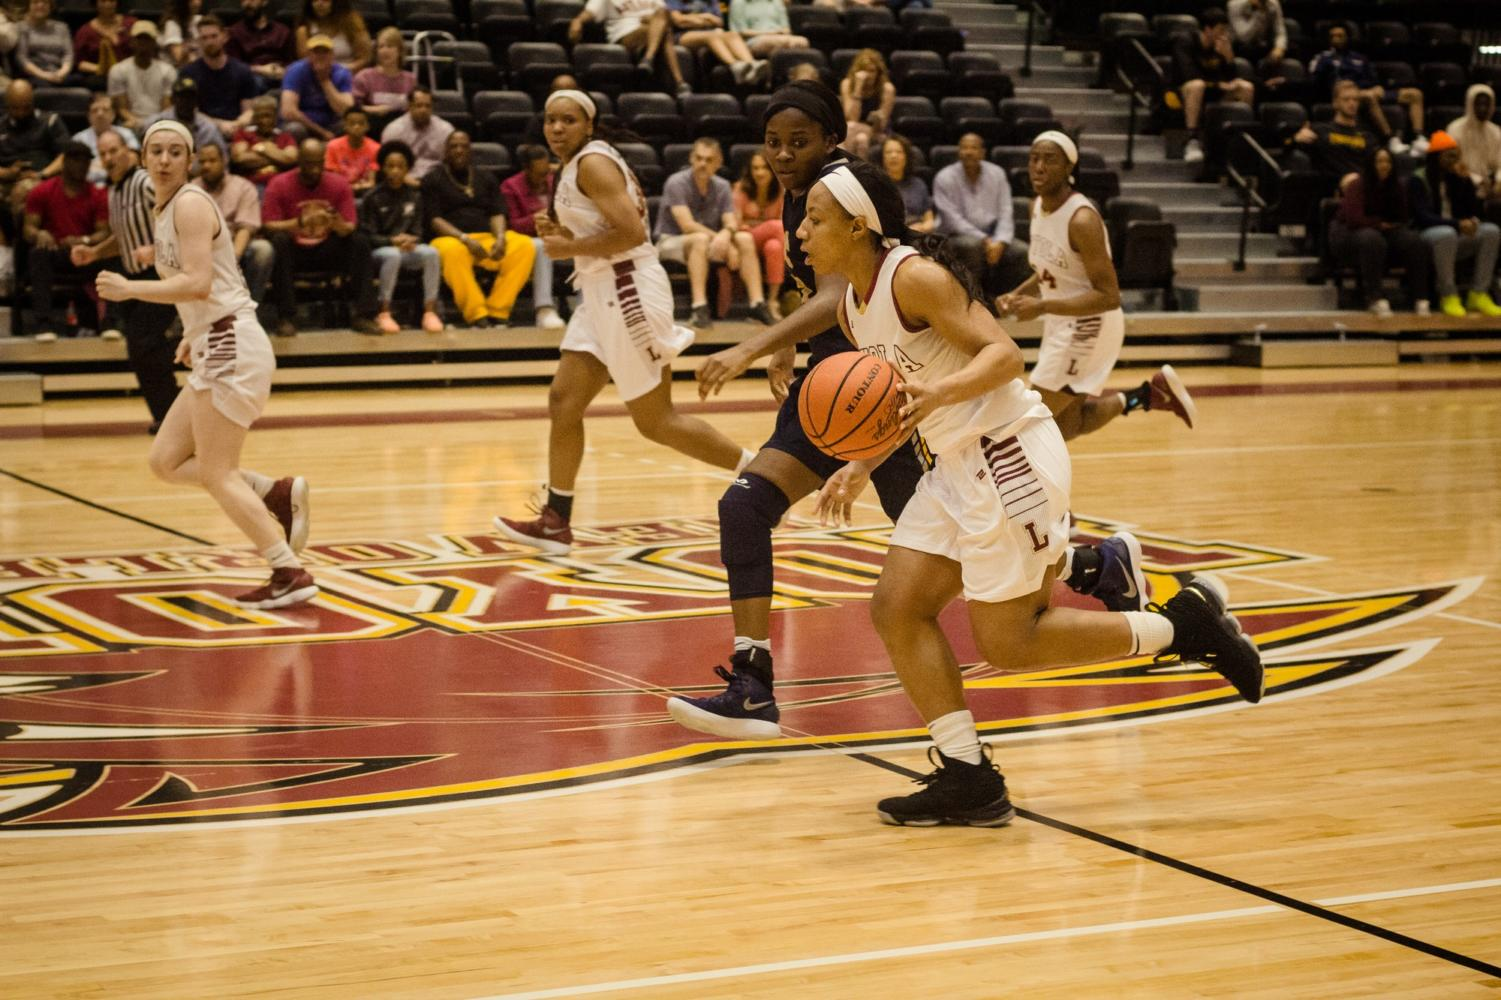 Biology senior Di'Mond Jackson (3) dribbling down the court at a home women's basketball game against Blue Mountain College Feb. 24, 2018. The game honored the team's seniors Jackson and mass communication senior Zoie Miller (10). Photo credit: Julia Santos